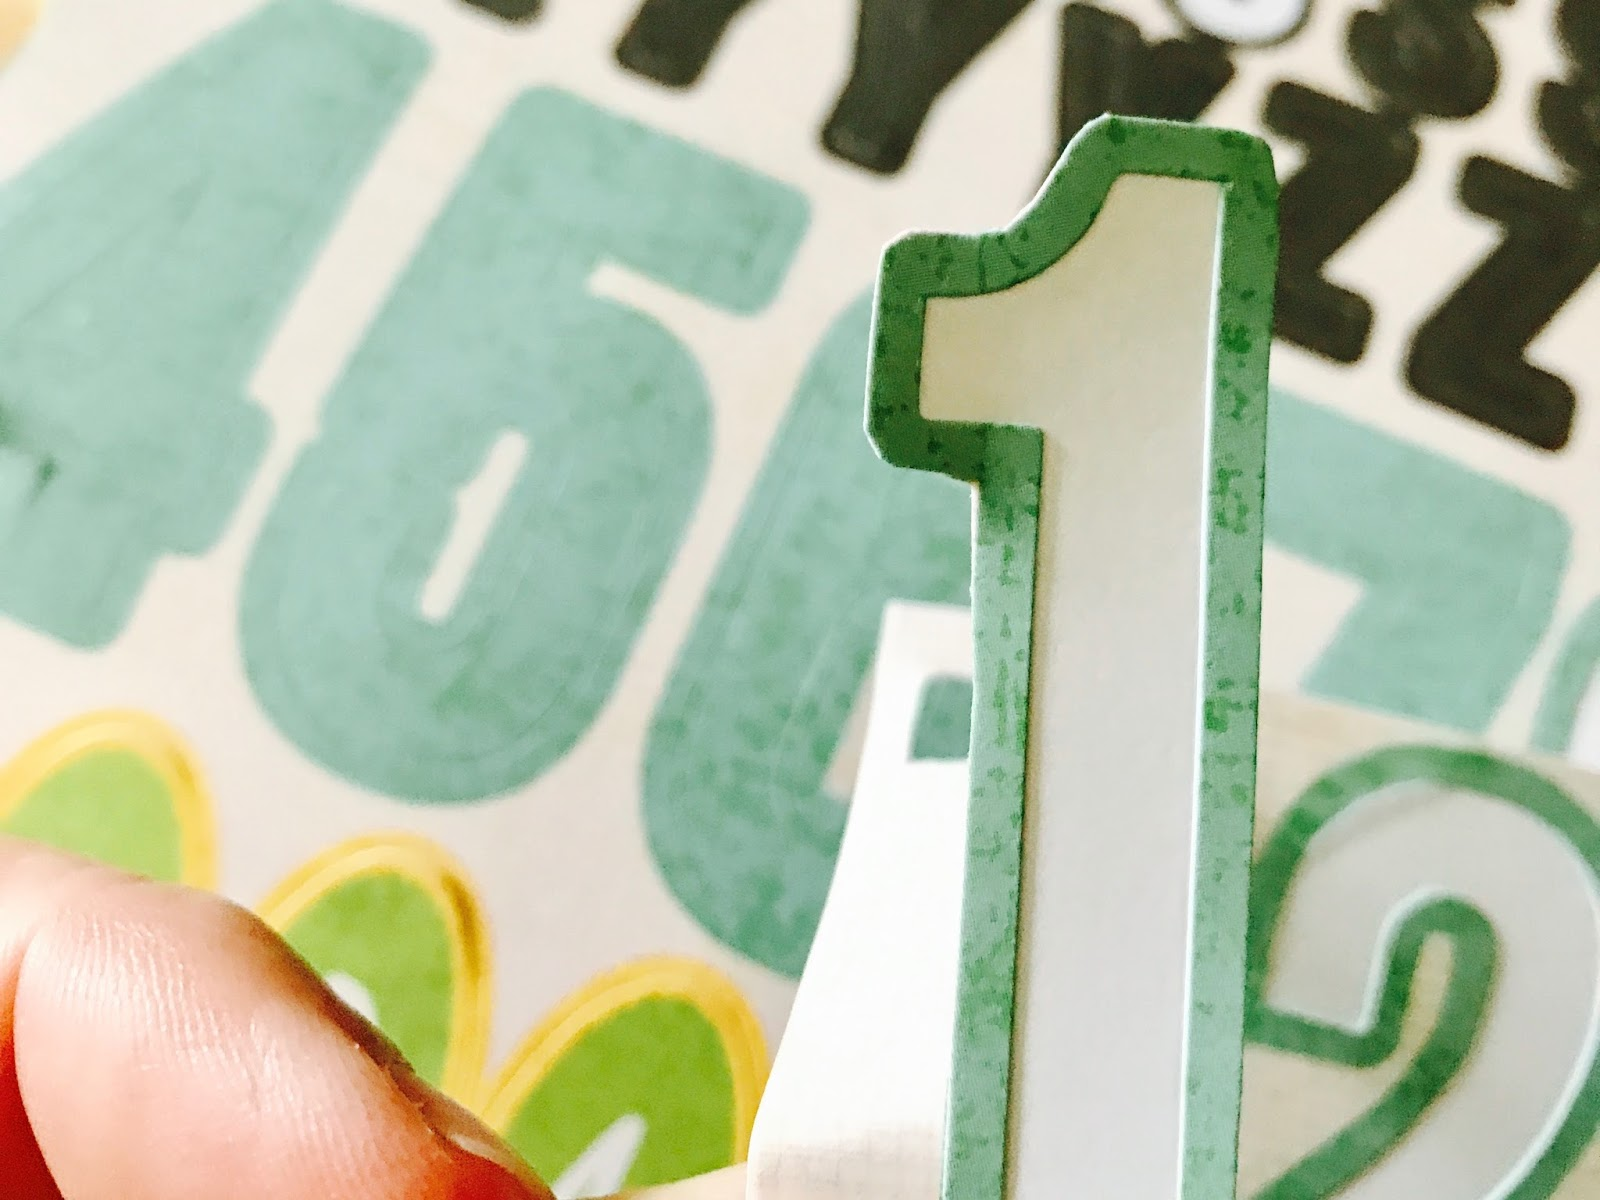 #recycle #number #letter #stickers #scrapbooking #iloveitallshop